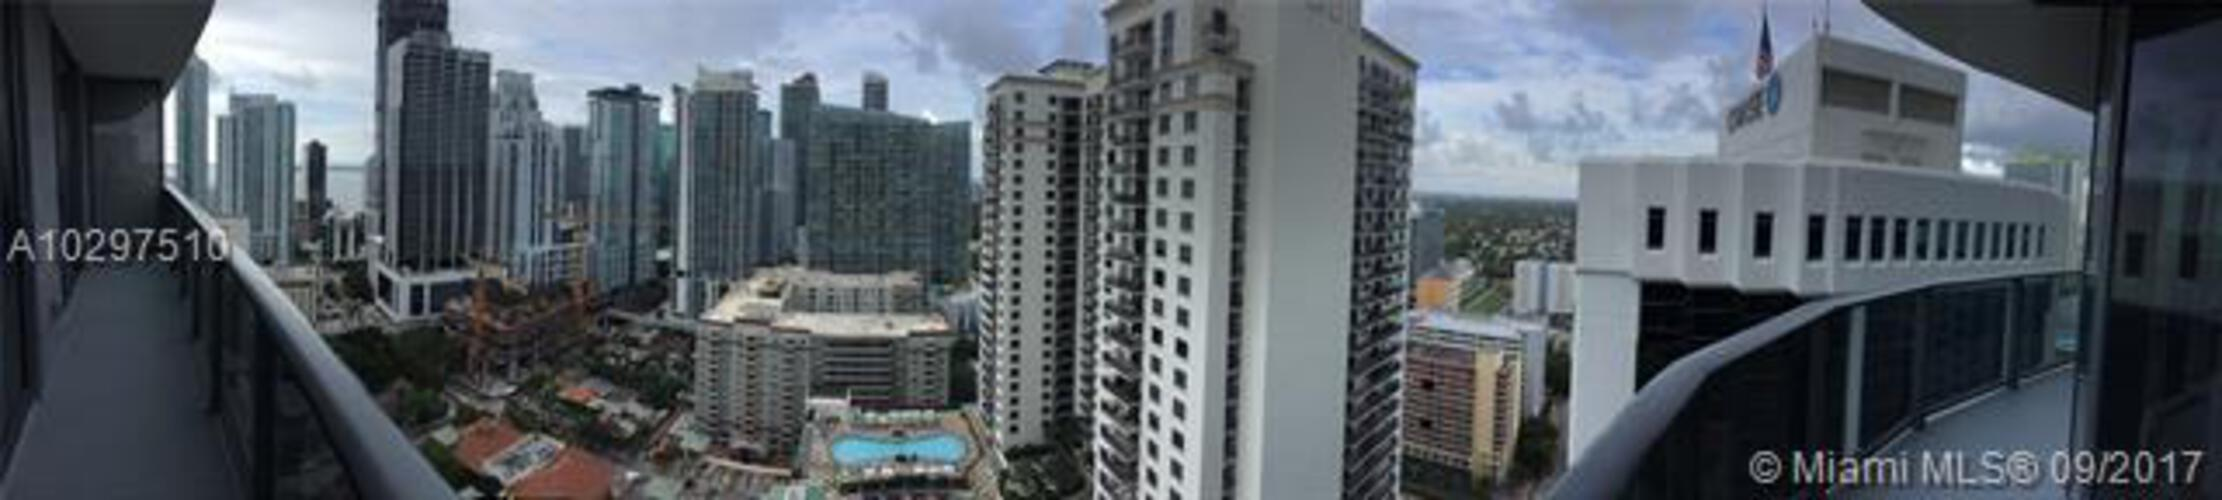 55 SW 9th St, Miami, FL 33130, Brickell Heights West Tower #2506, Brickell, Miami A10297510 image #13